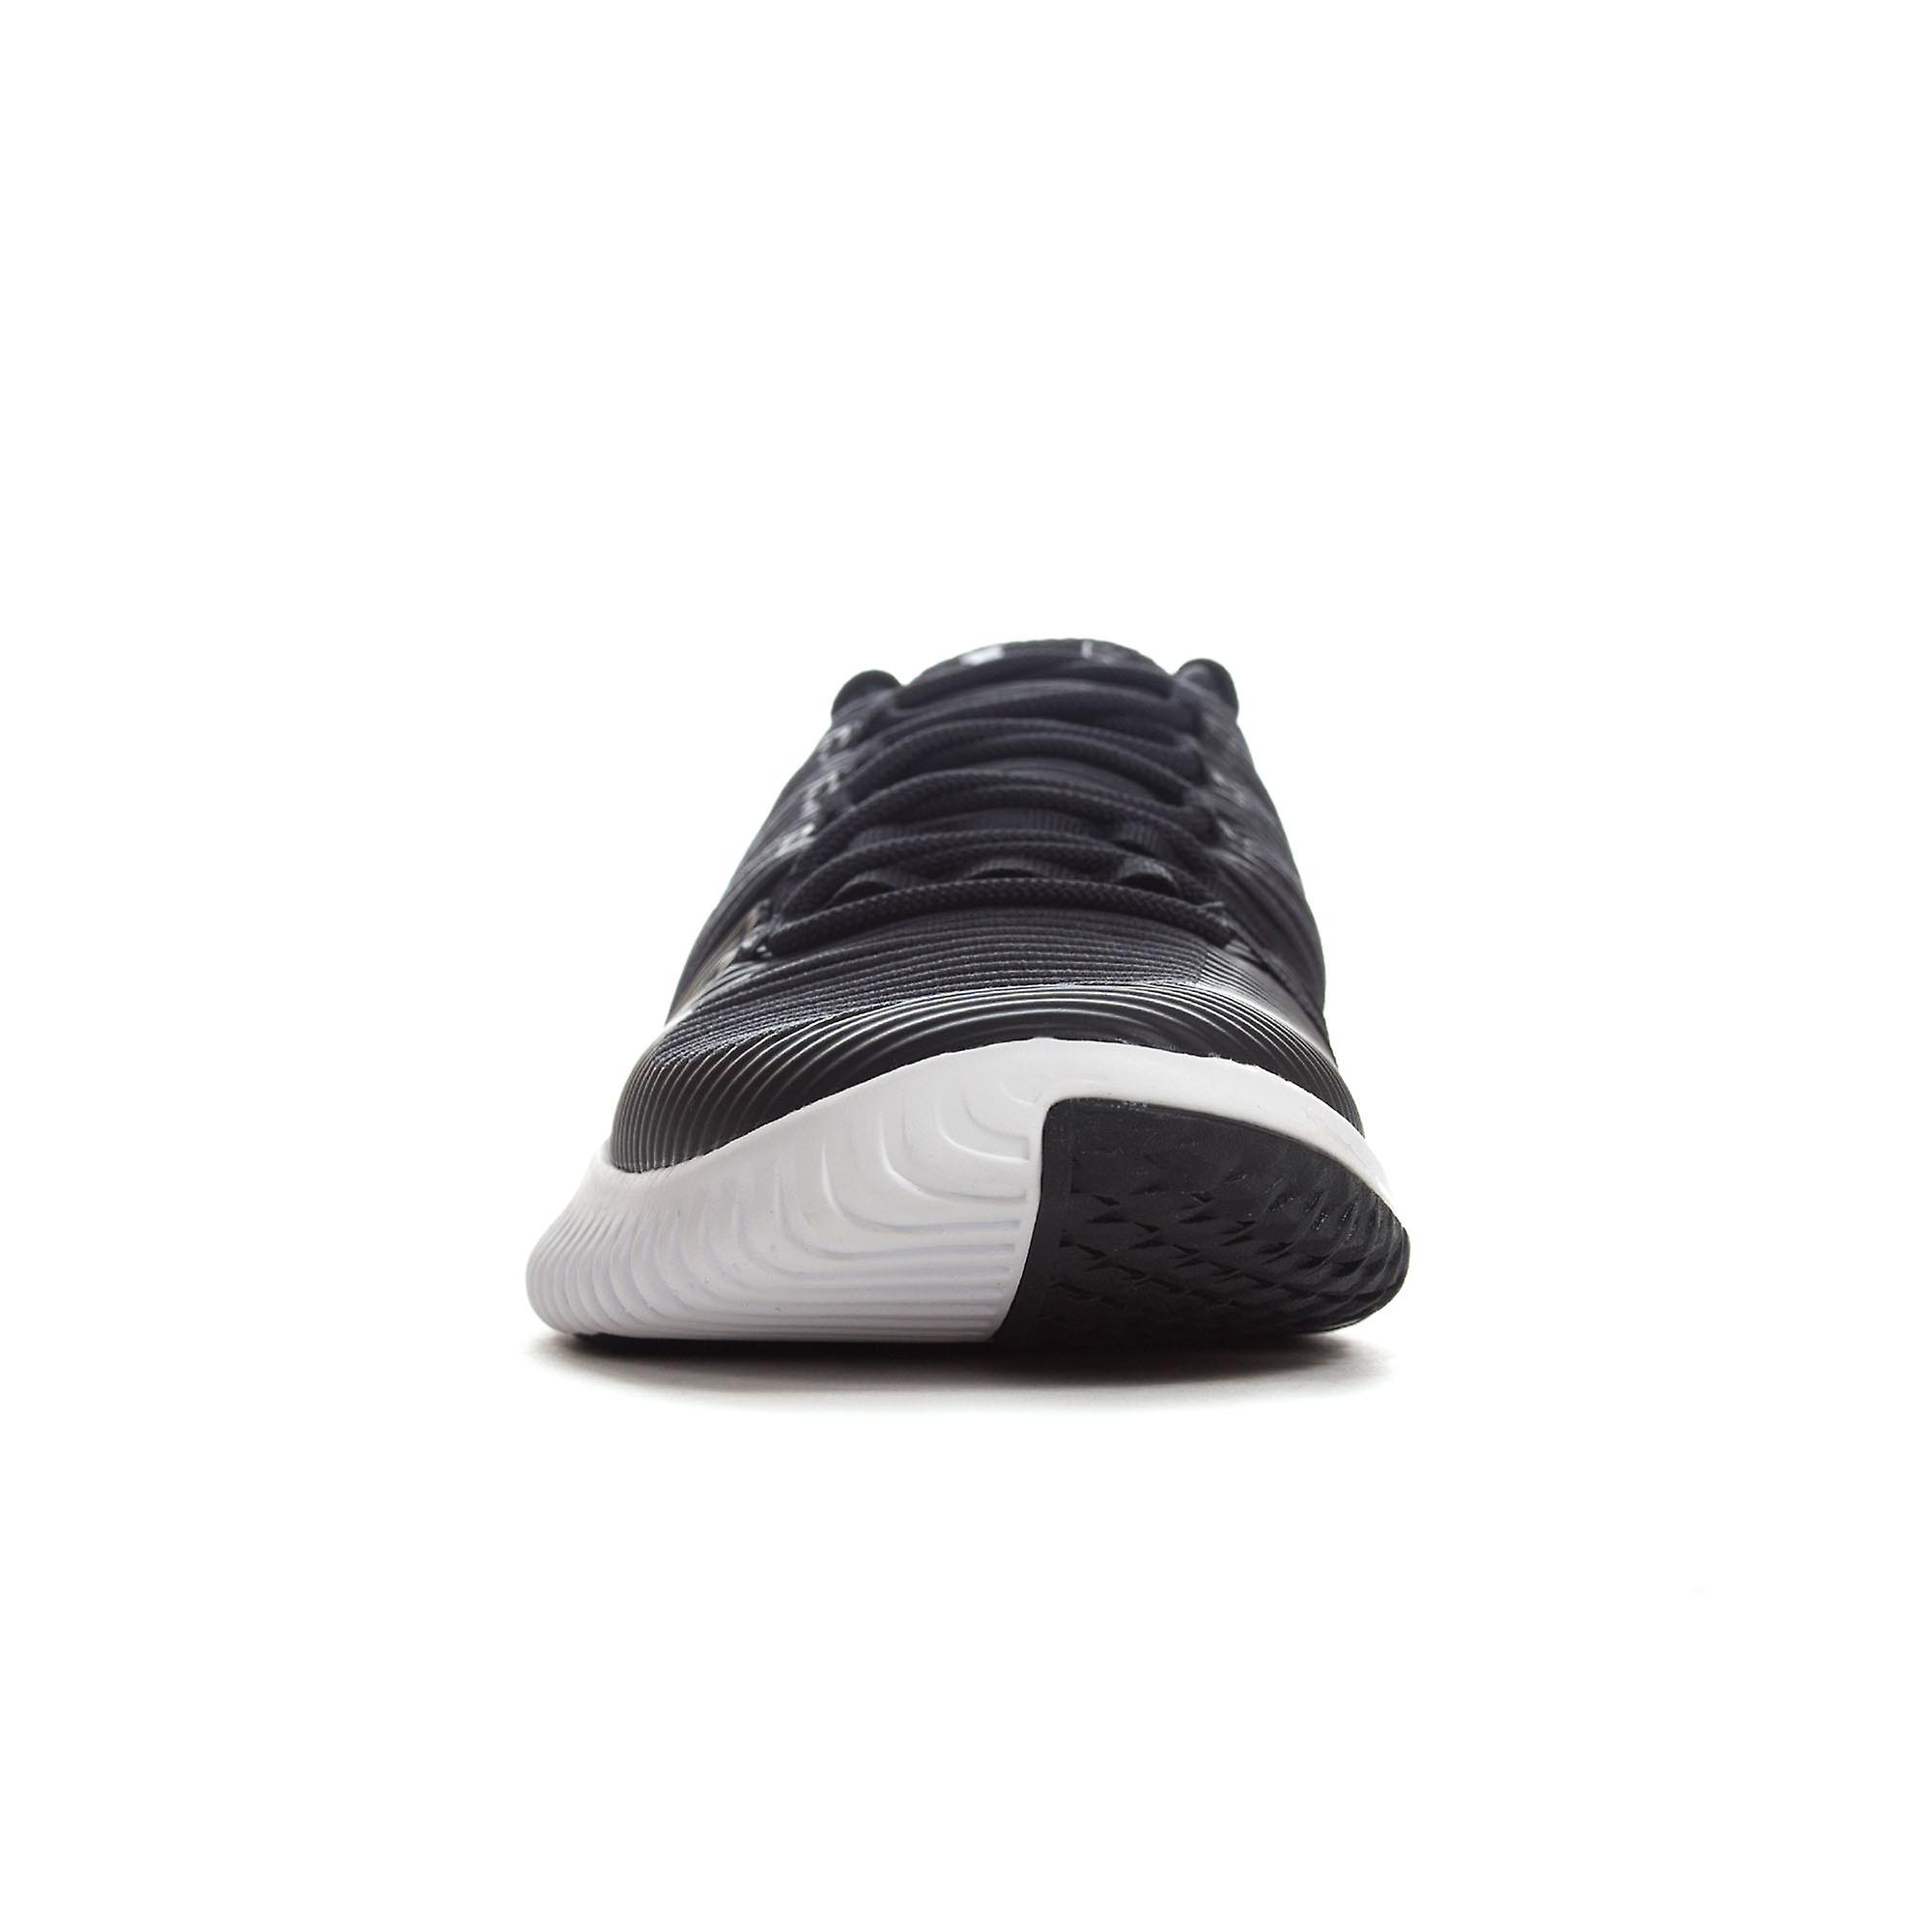 Under Armour Ultimate Speed Mens Training Trainer Shoe Grey